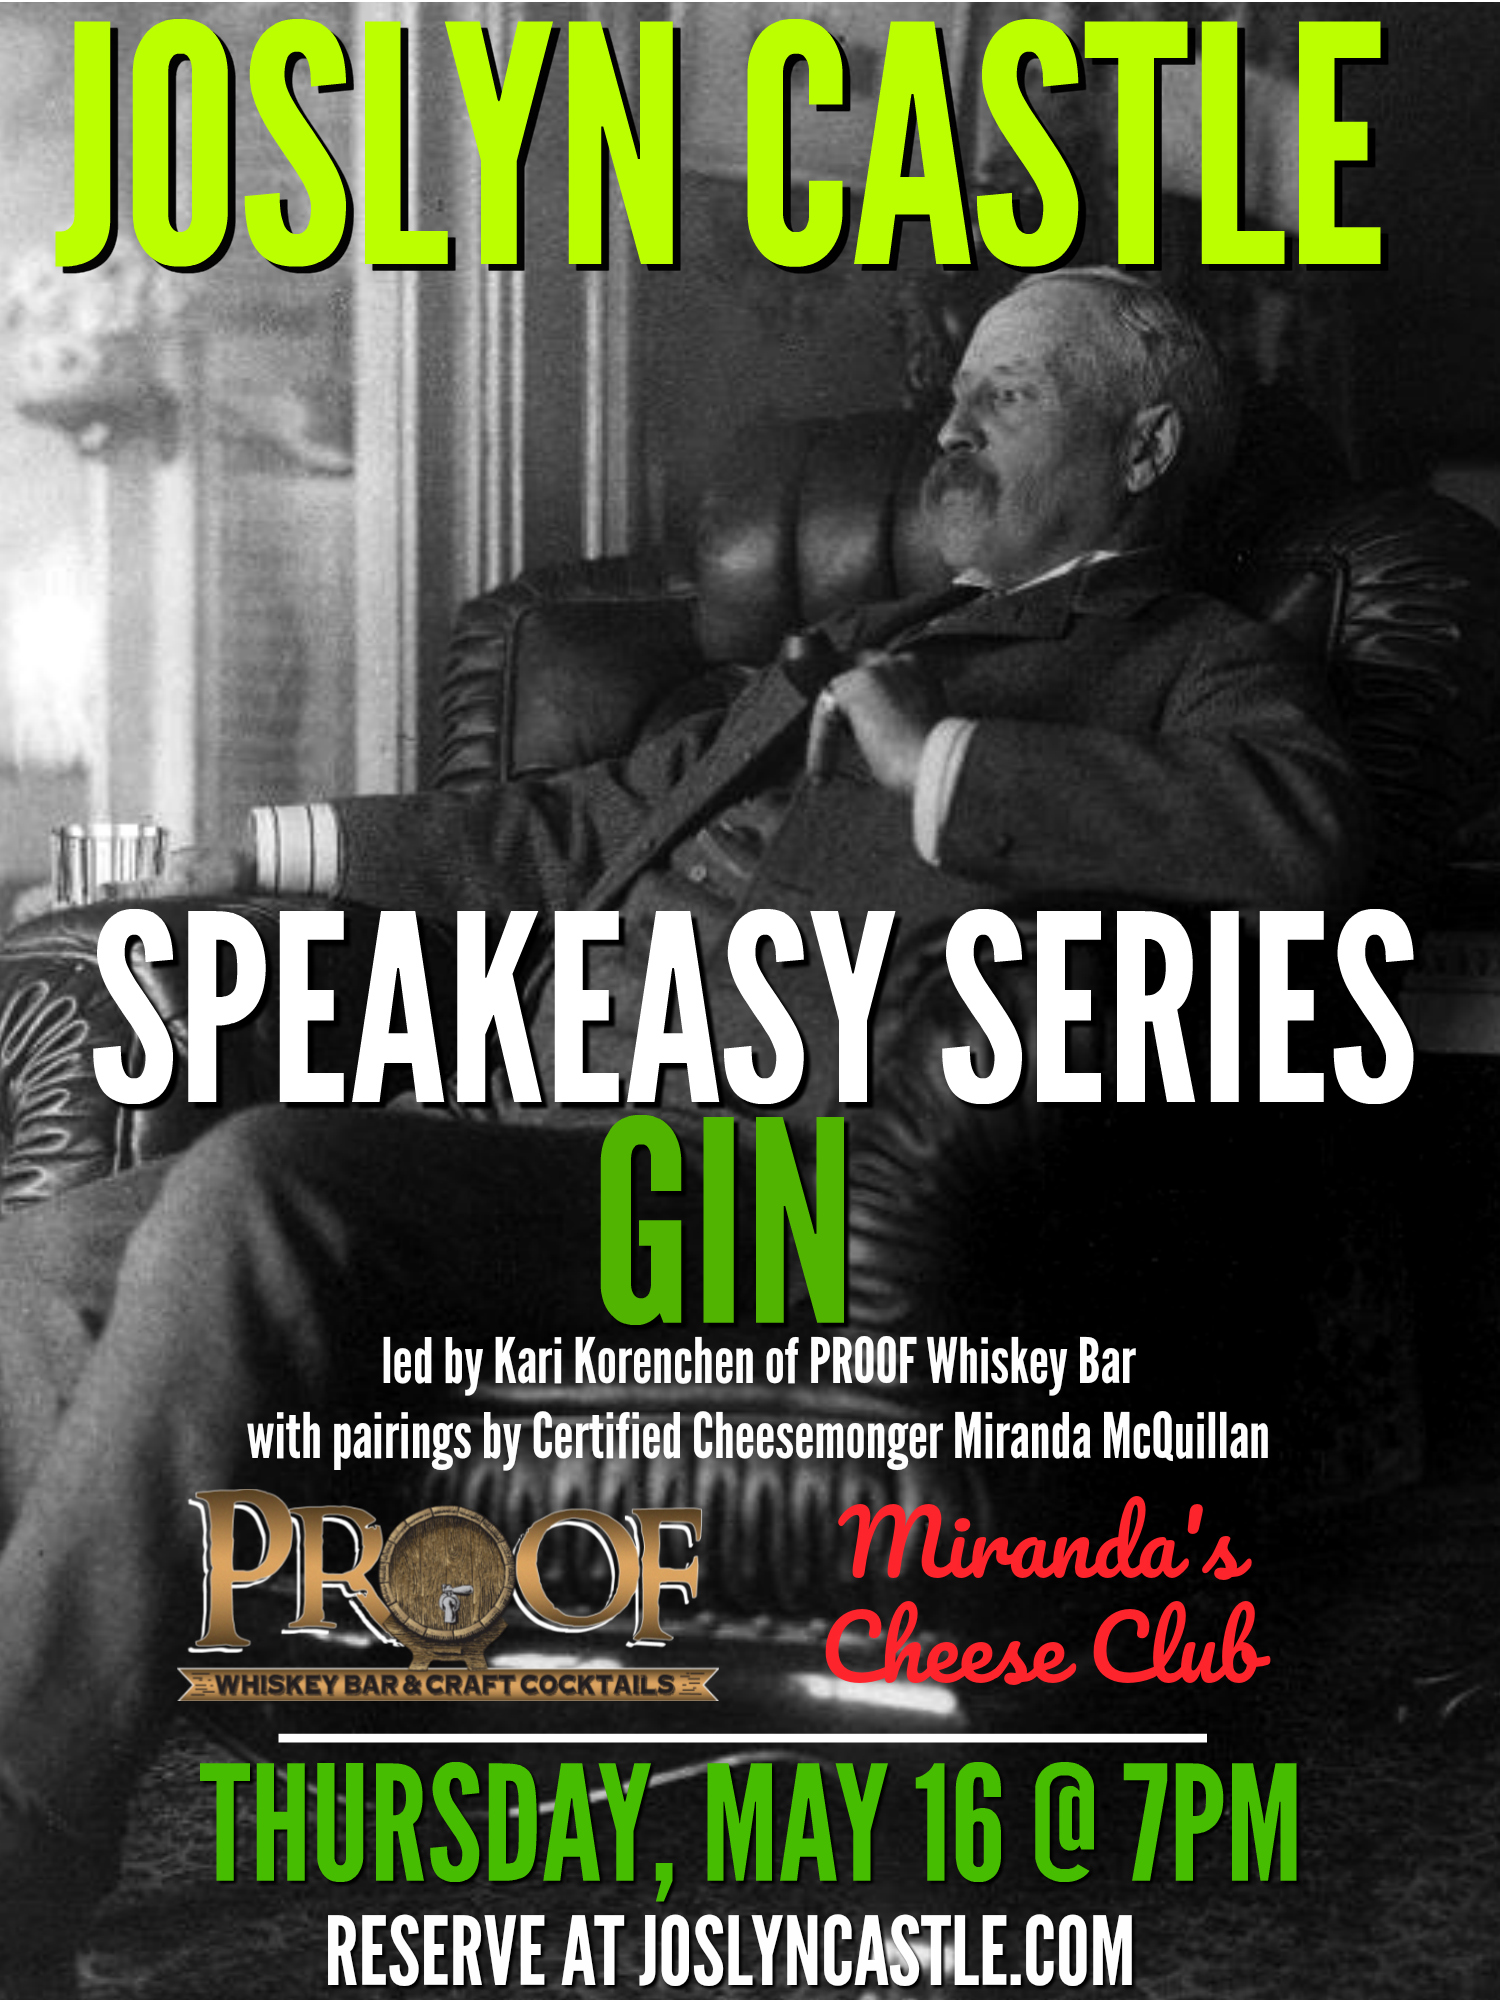 Speakeasy Series: Gin Tasting